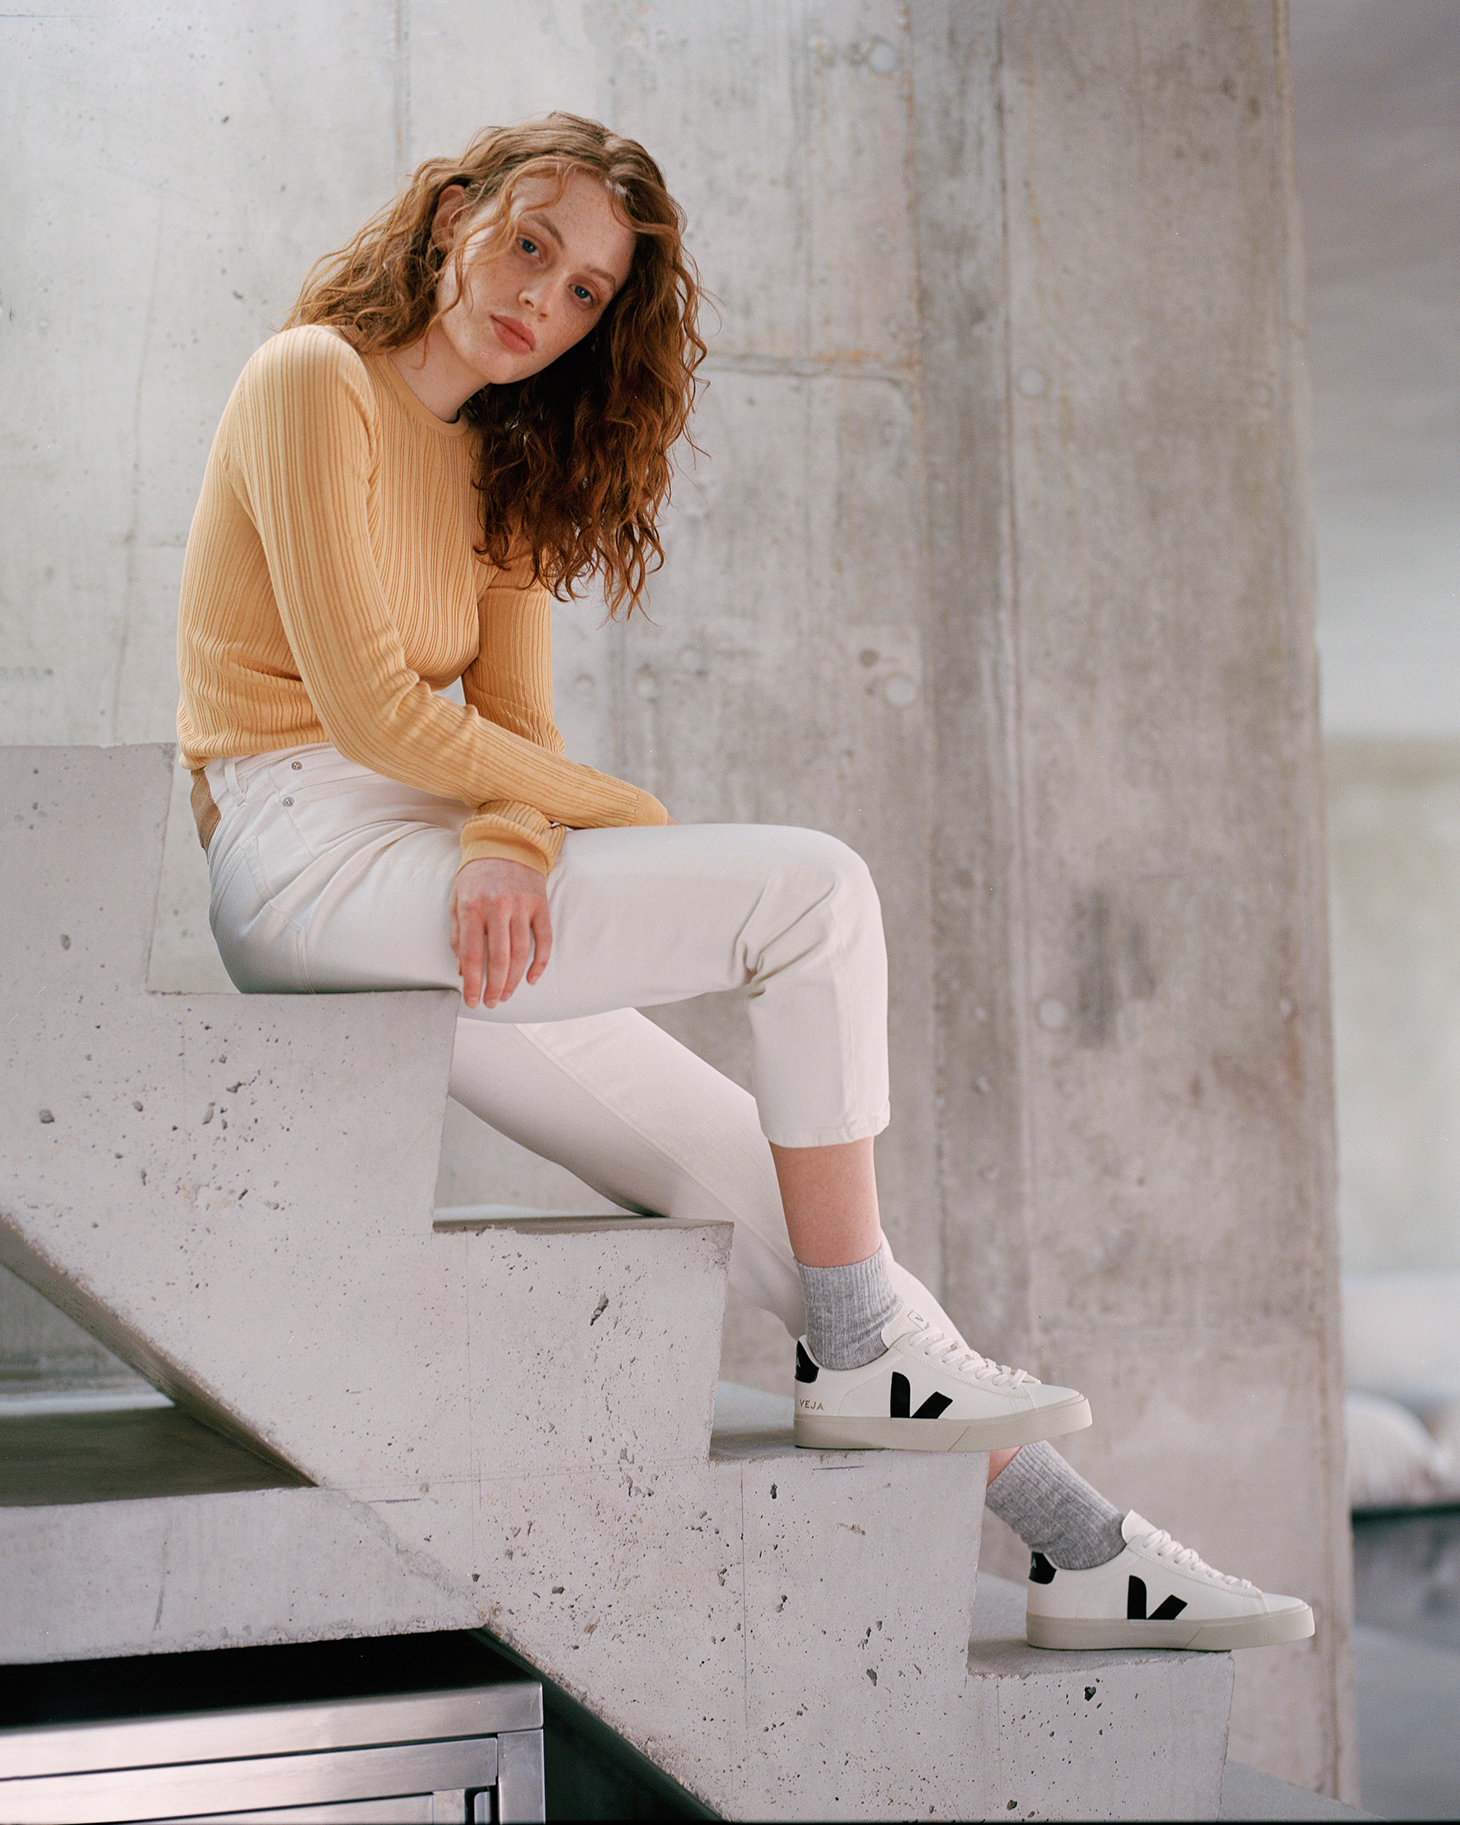 Red Curly Hair Stairs Female Model